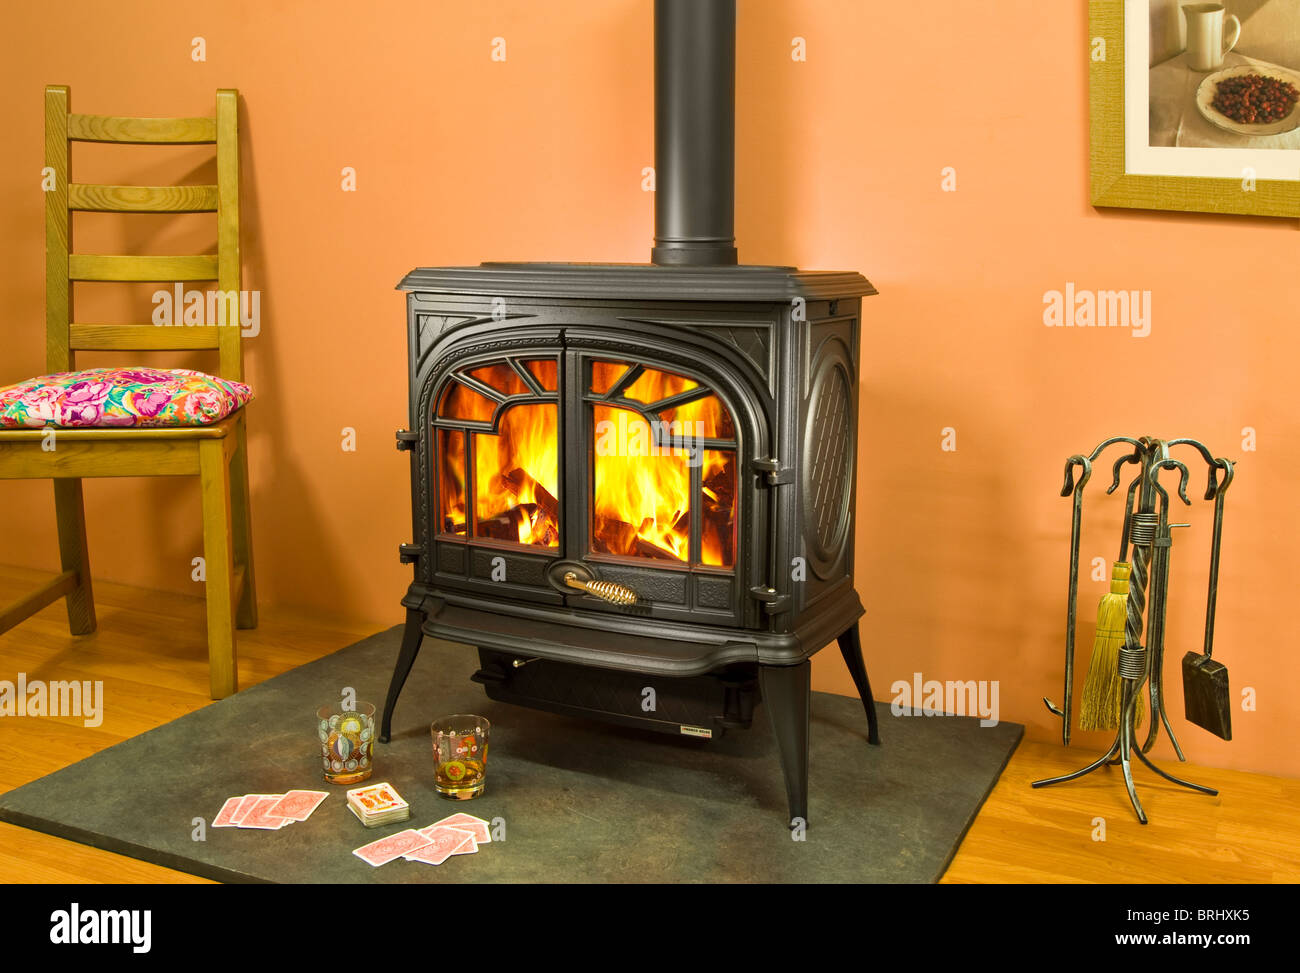 wood burning stoves fireplace stock photos wood burning stoves fireplace stock images alamy. Black Bedroom Furniture Sets. Home Design Ideas